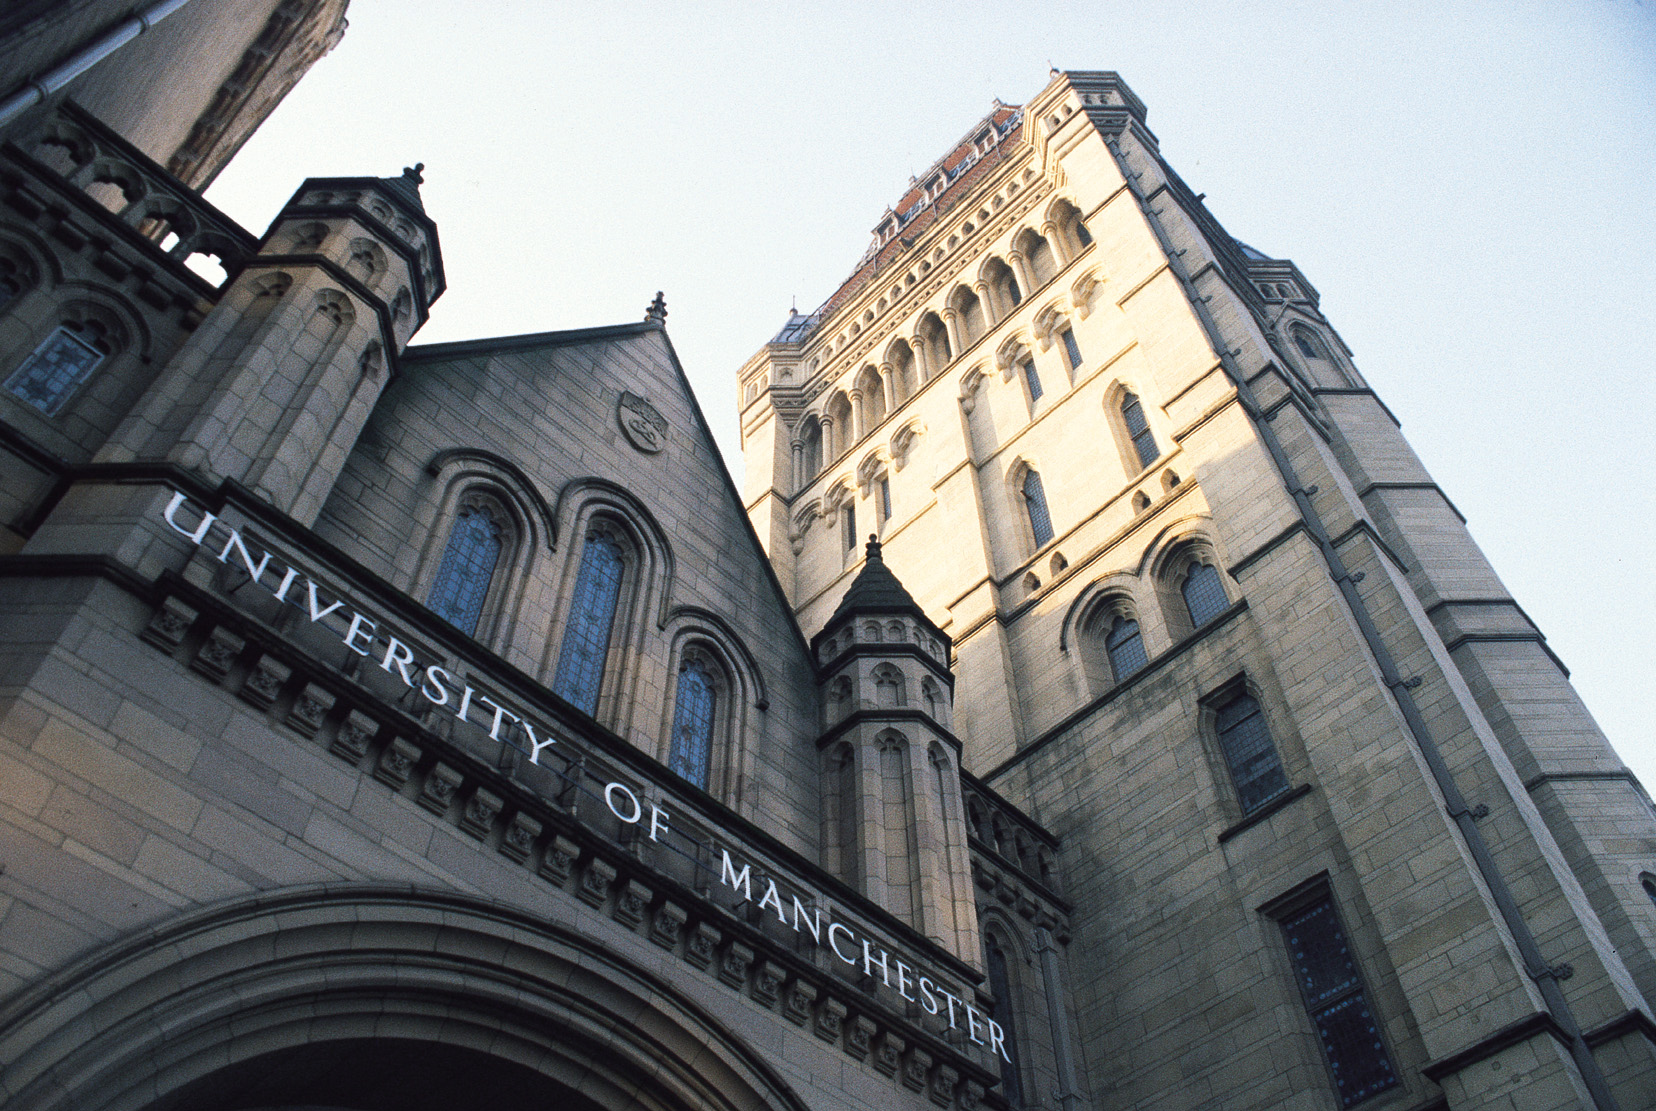 an application at the university of manchester